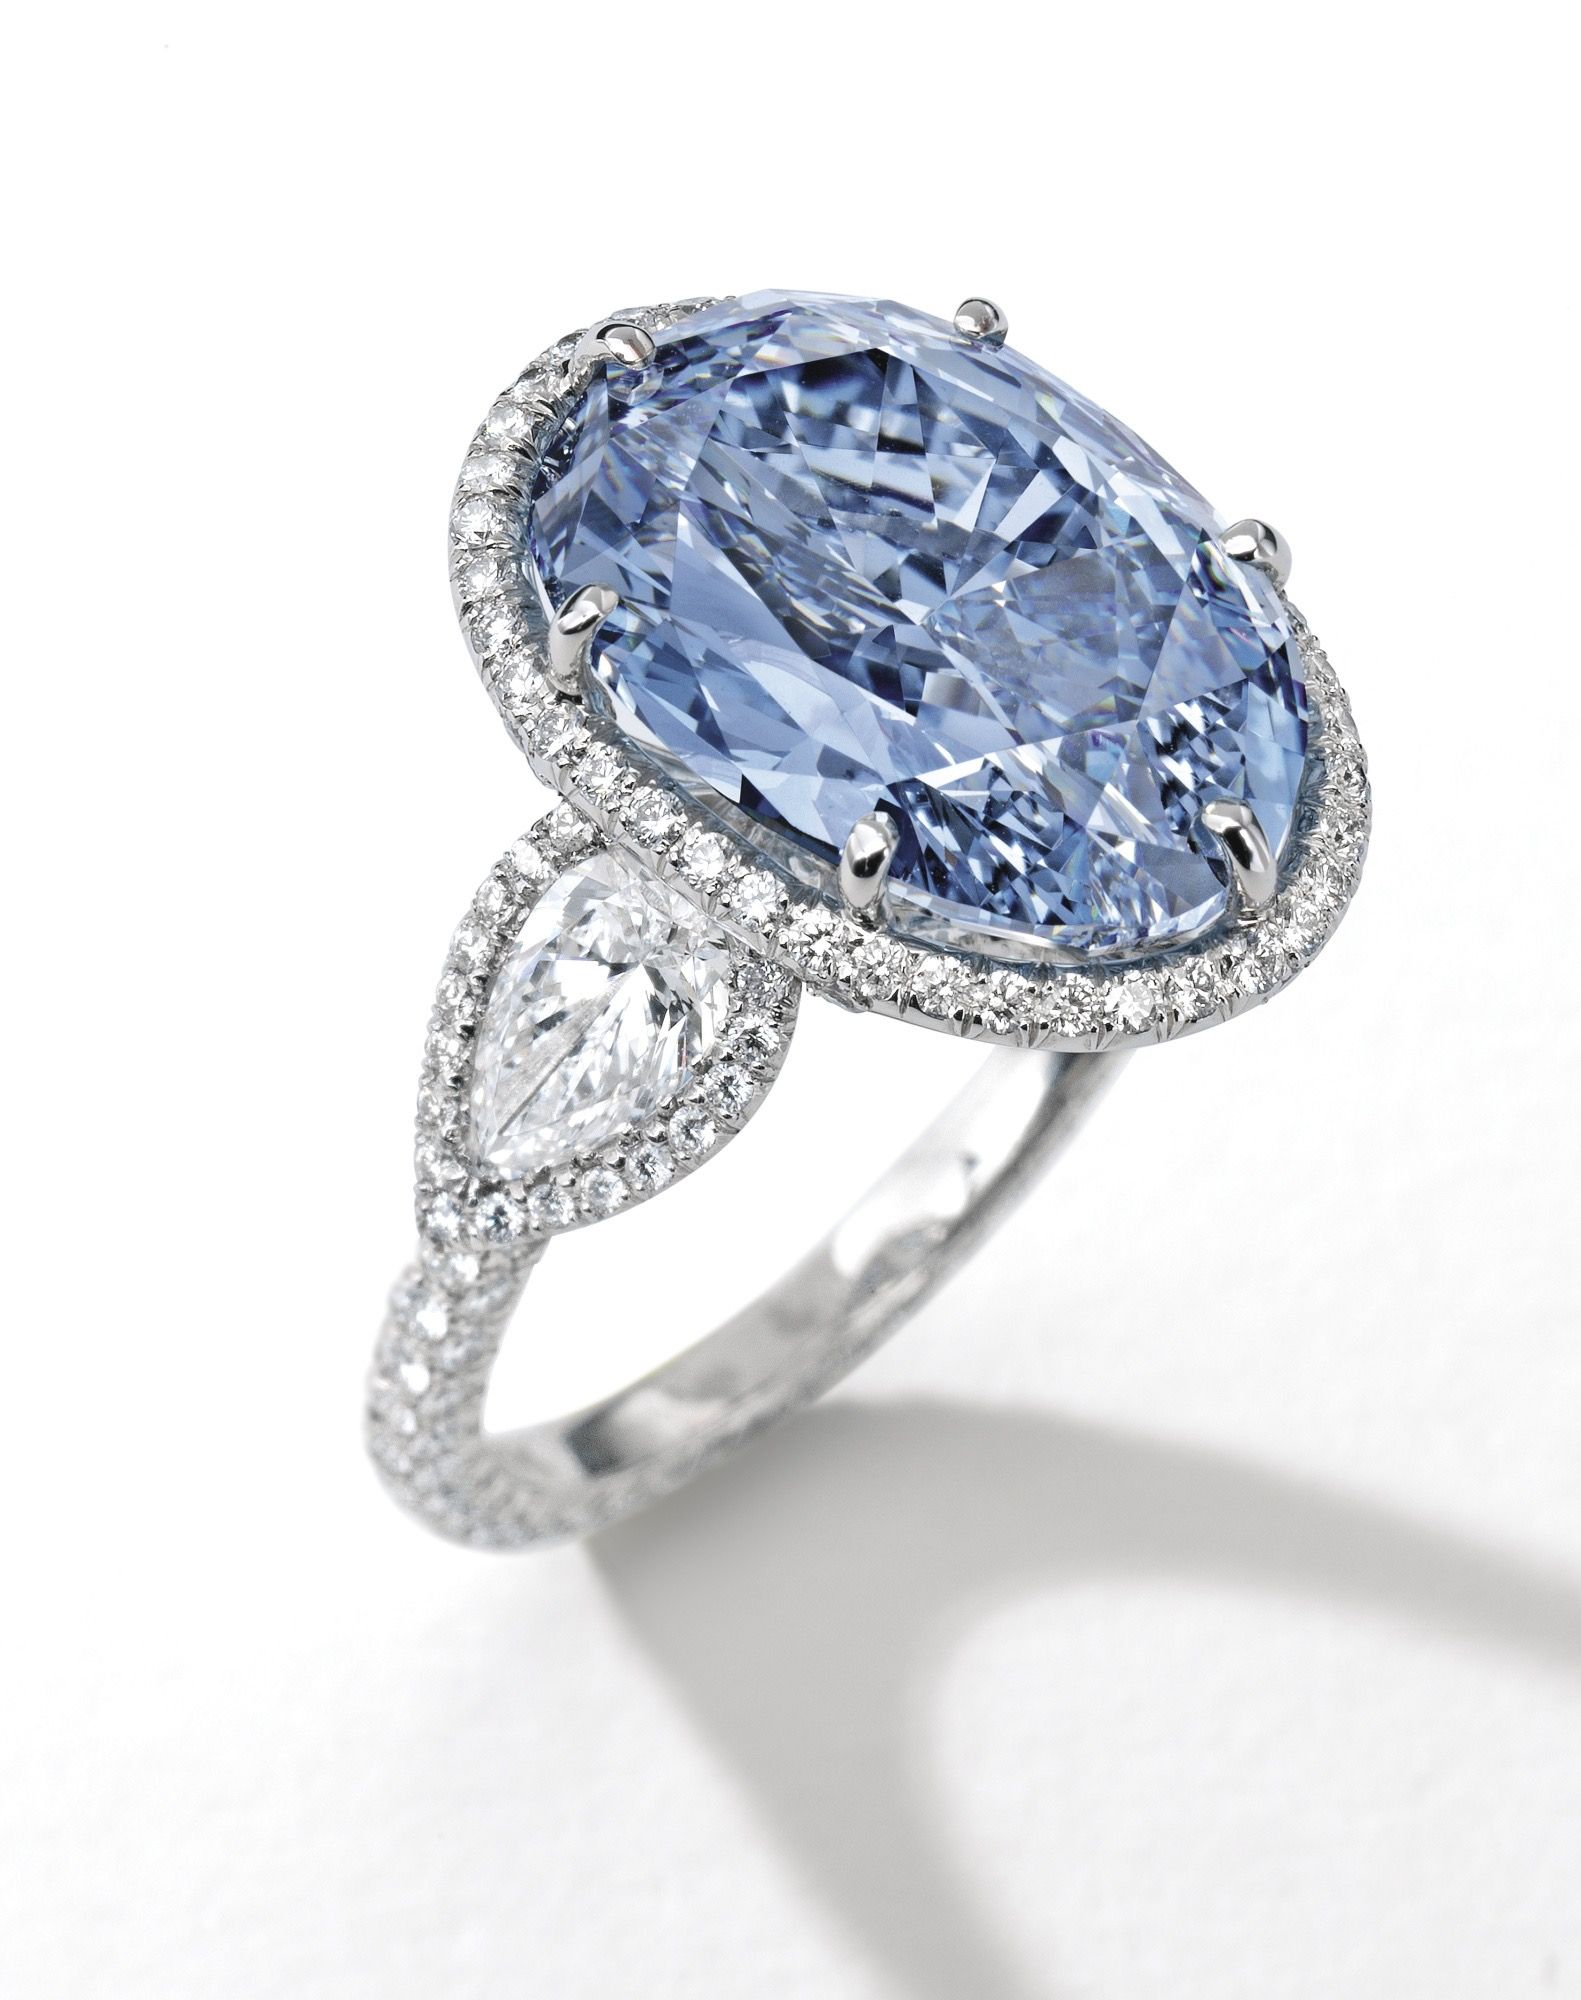 SUPERB AND RARE FANCY VIVID BLUE DIAMOND AND DIAMOND RING Set